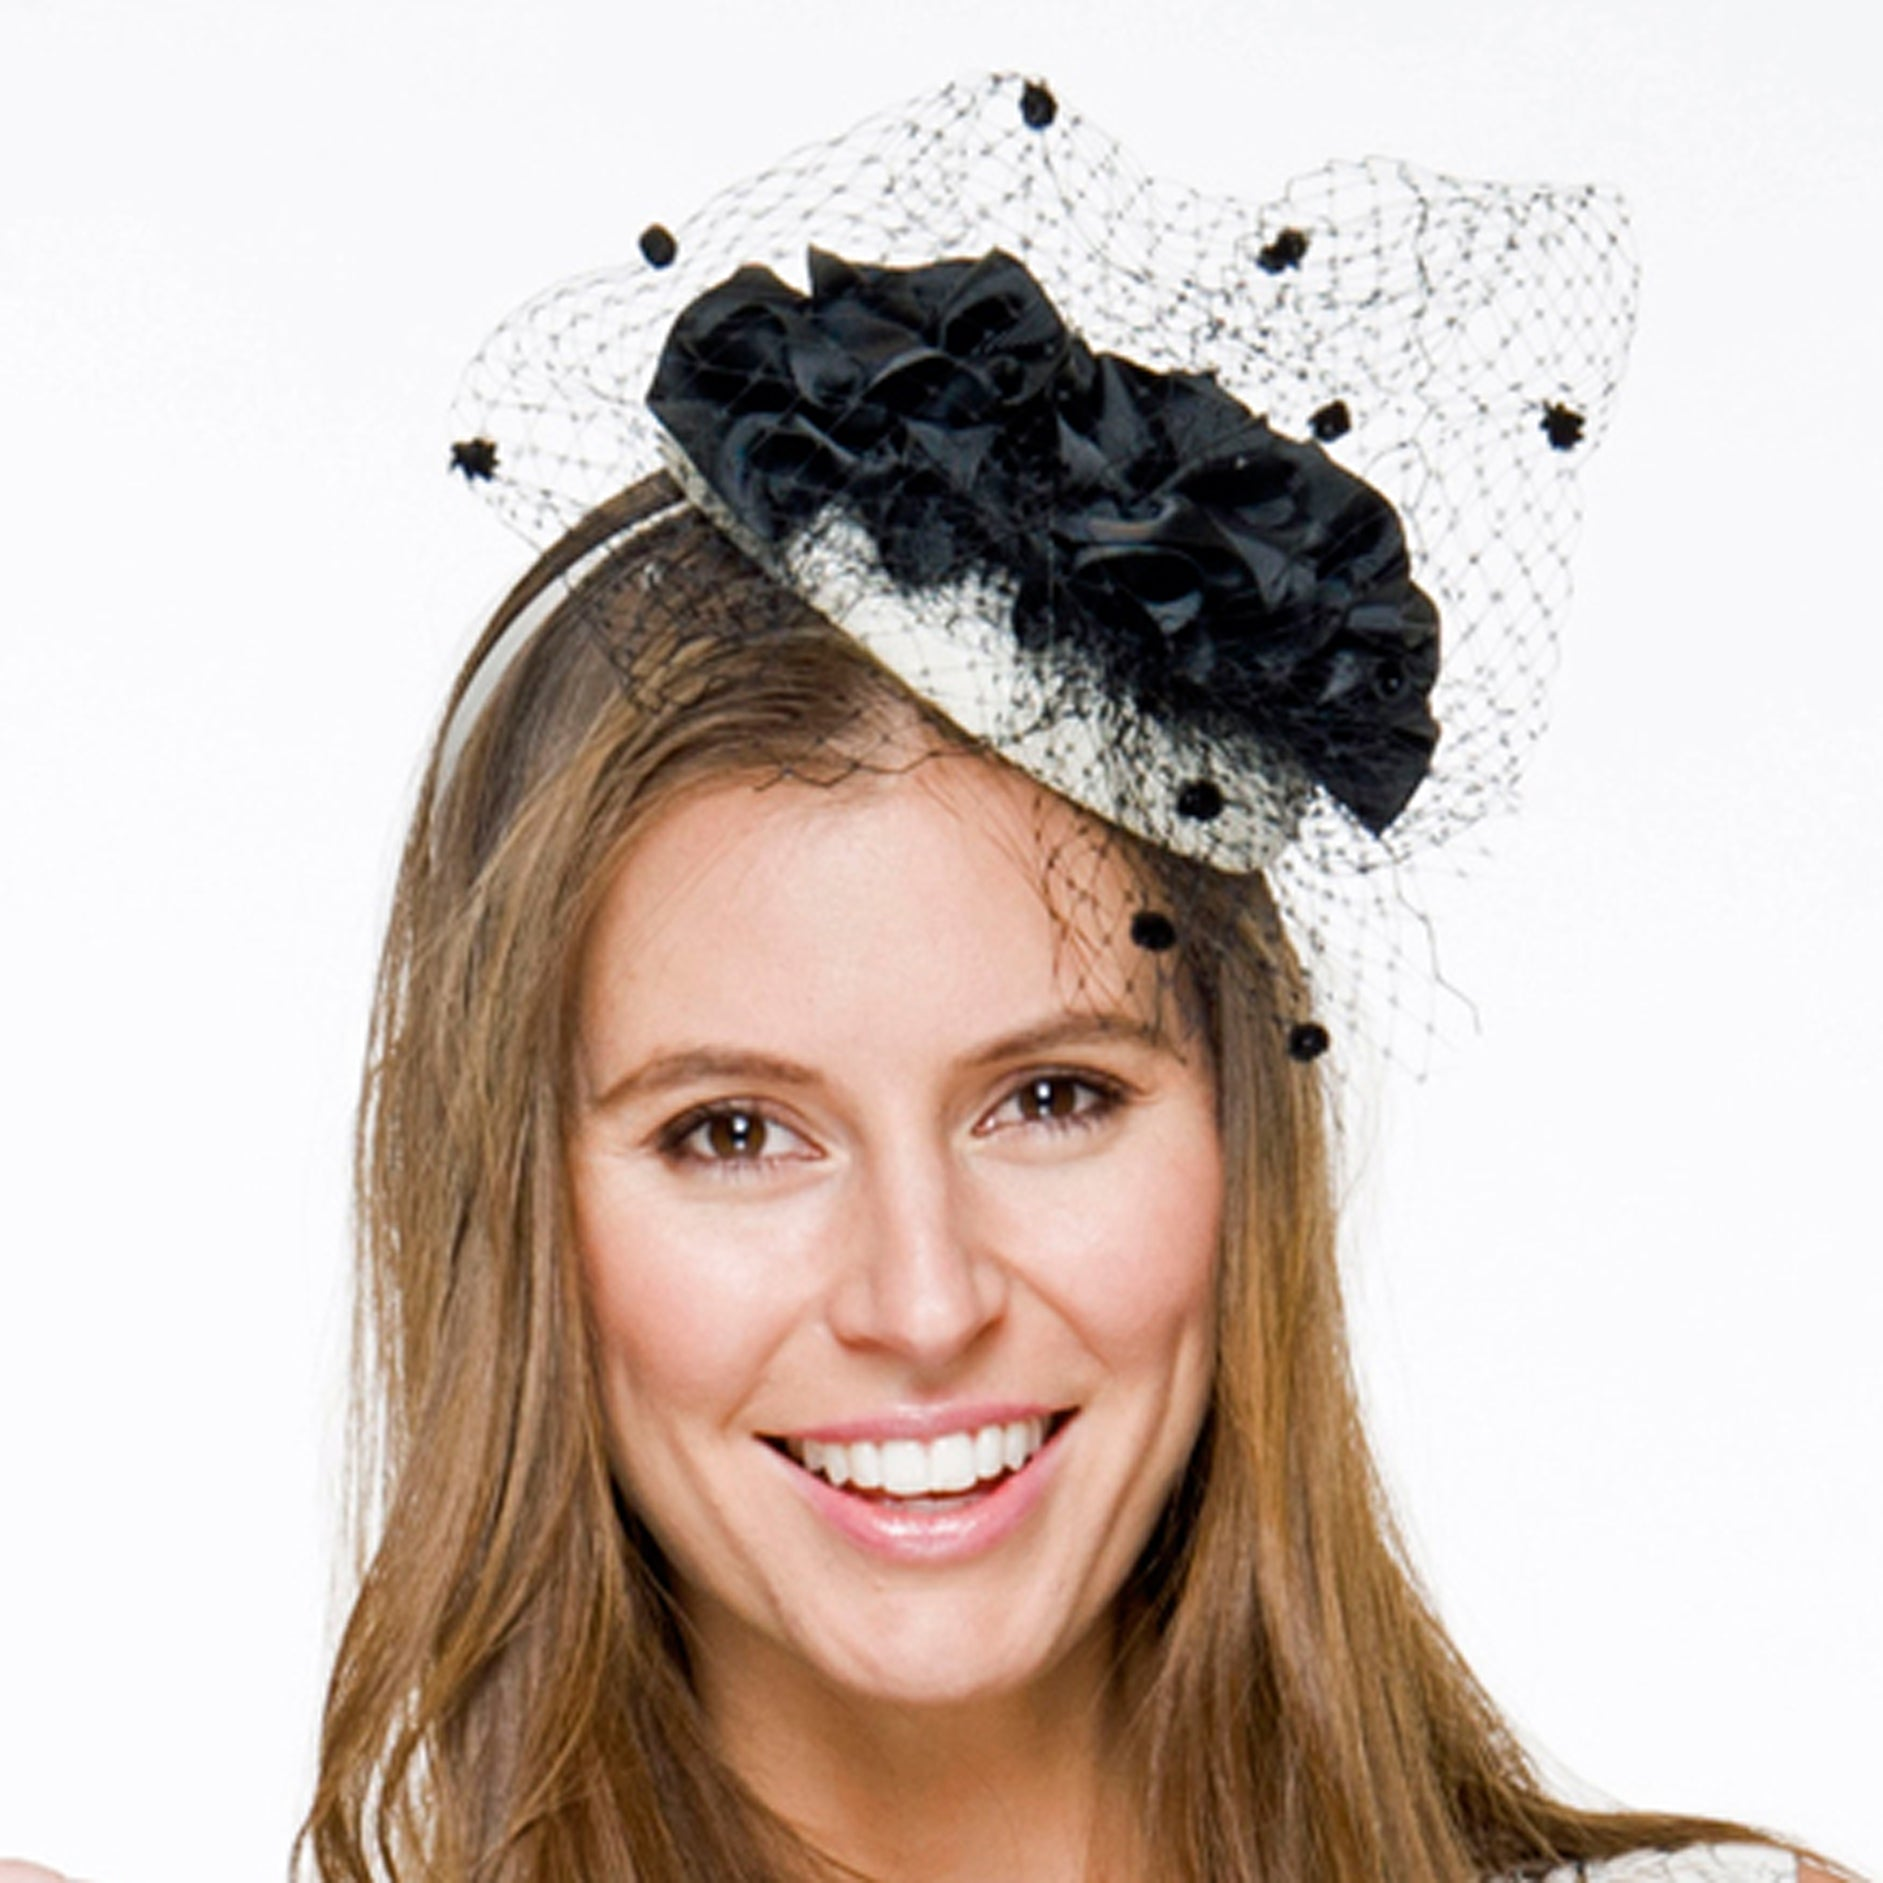 Layla Black & Cream Fascinator, Kentucky Derby Hat, Royal Wedding Hat, Black and White Cocktail Hat, Spring Racing Headband, Women's Tea Hat